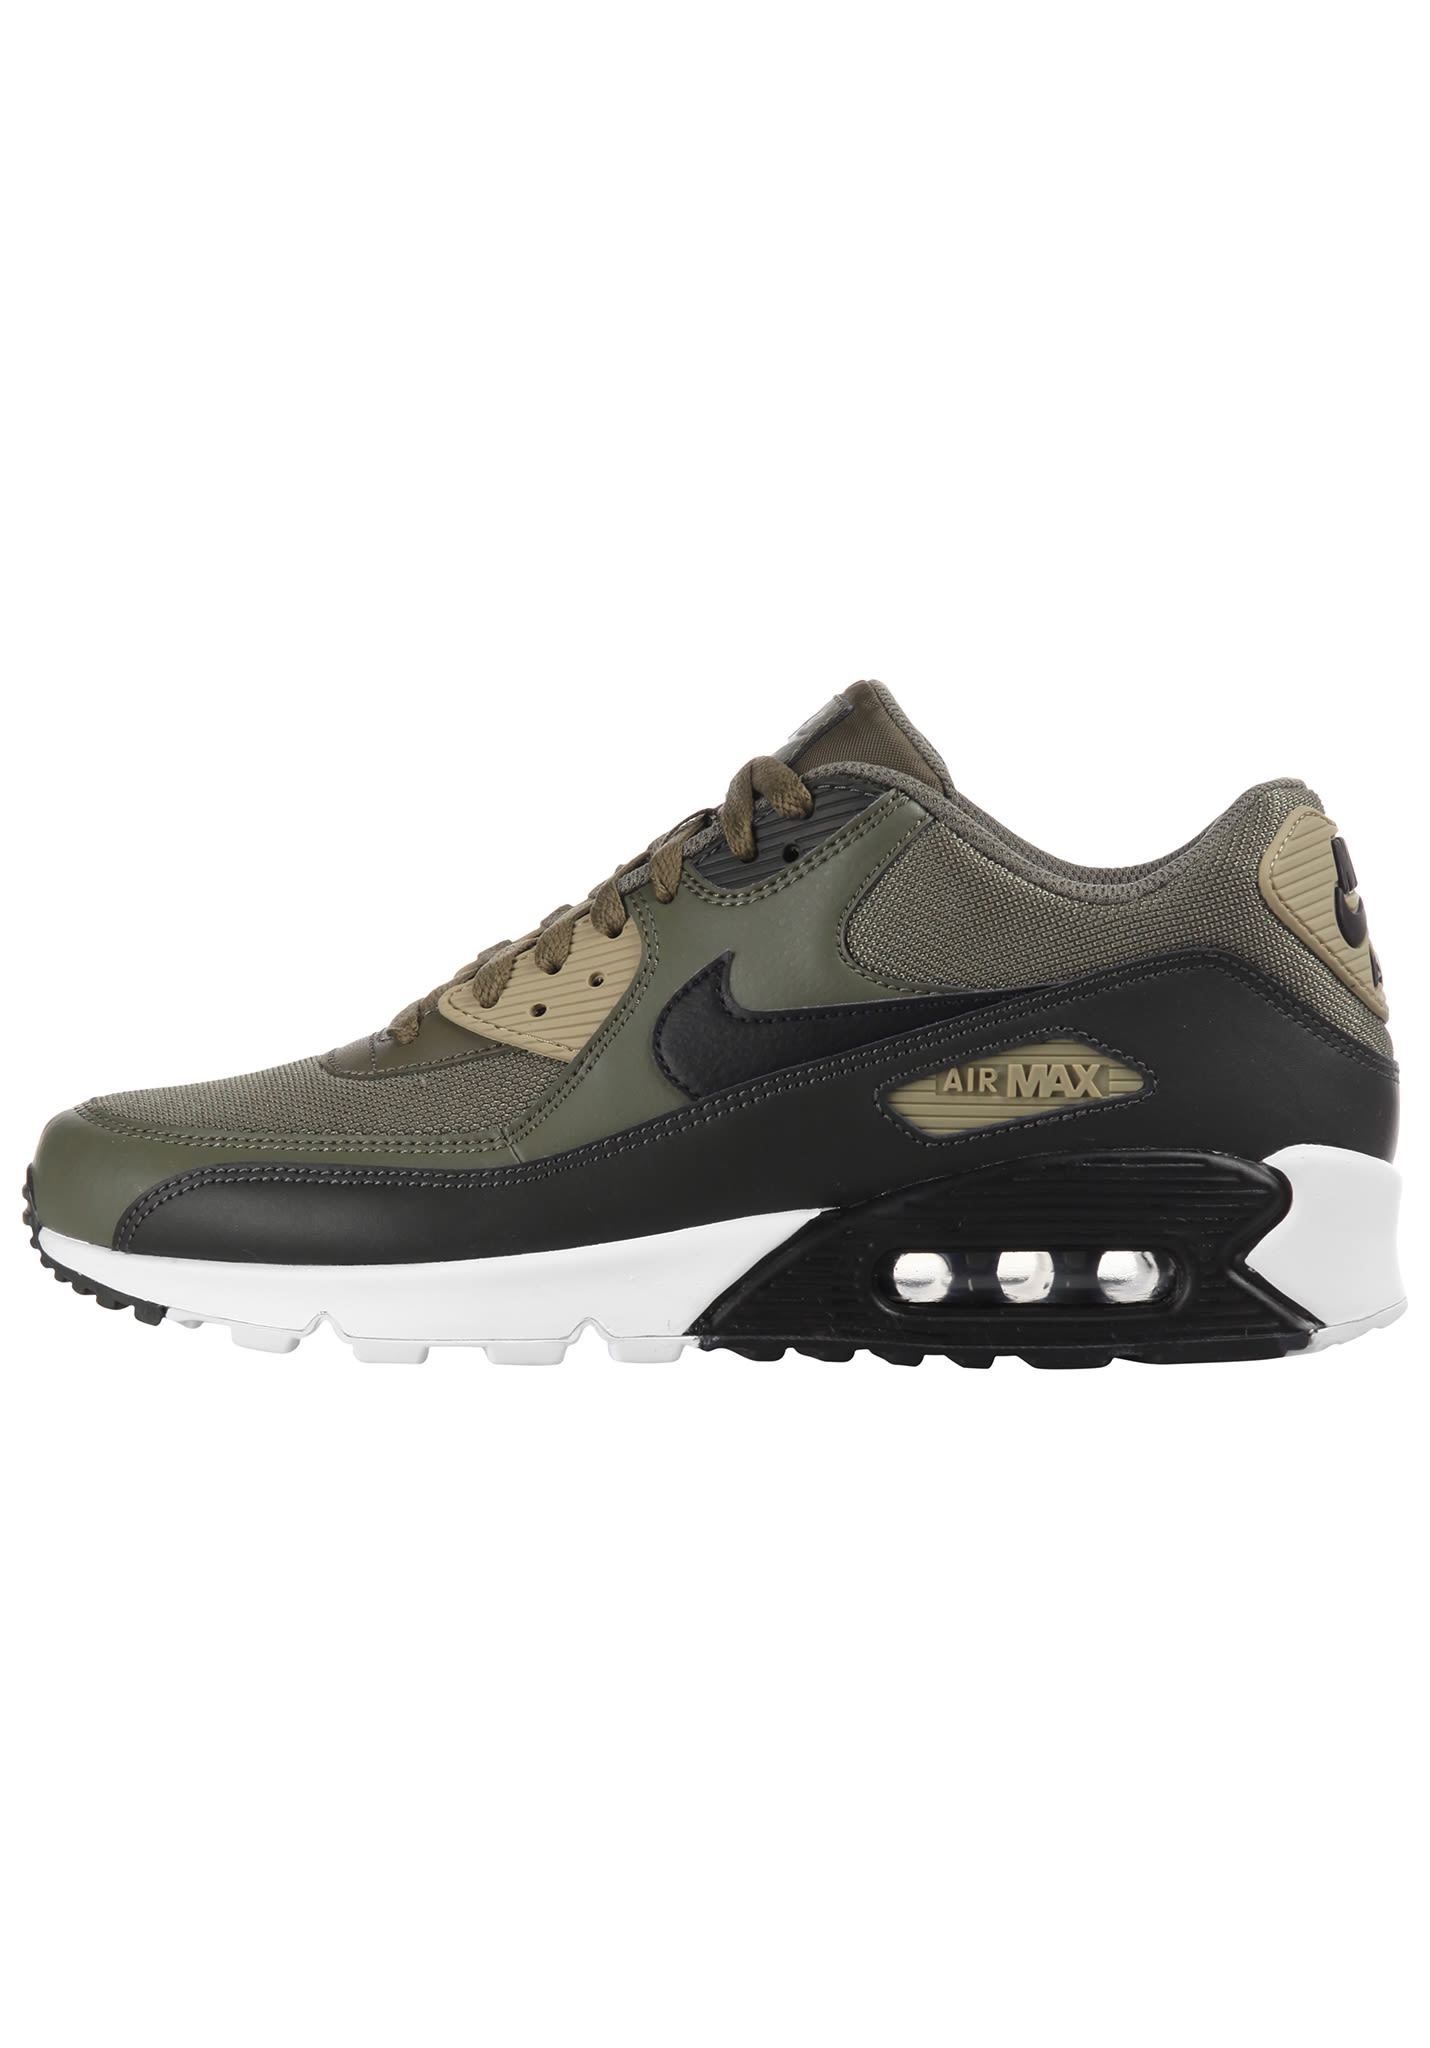 check out be9c1 d4336 NIKE SPORTSWEAR Air Max 90 Essential - Sneakers for Men - Green - Planet  Sports